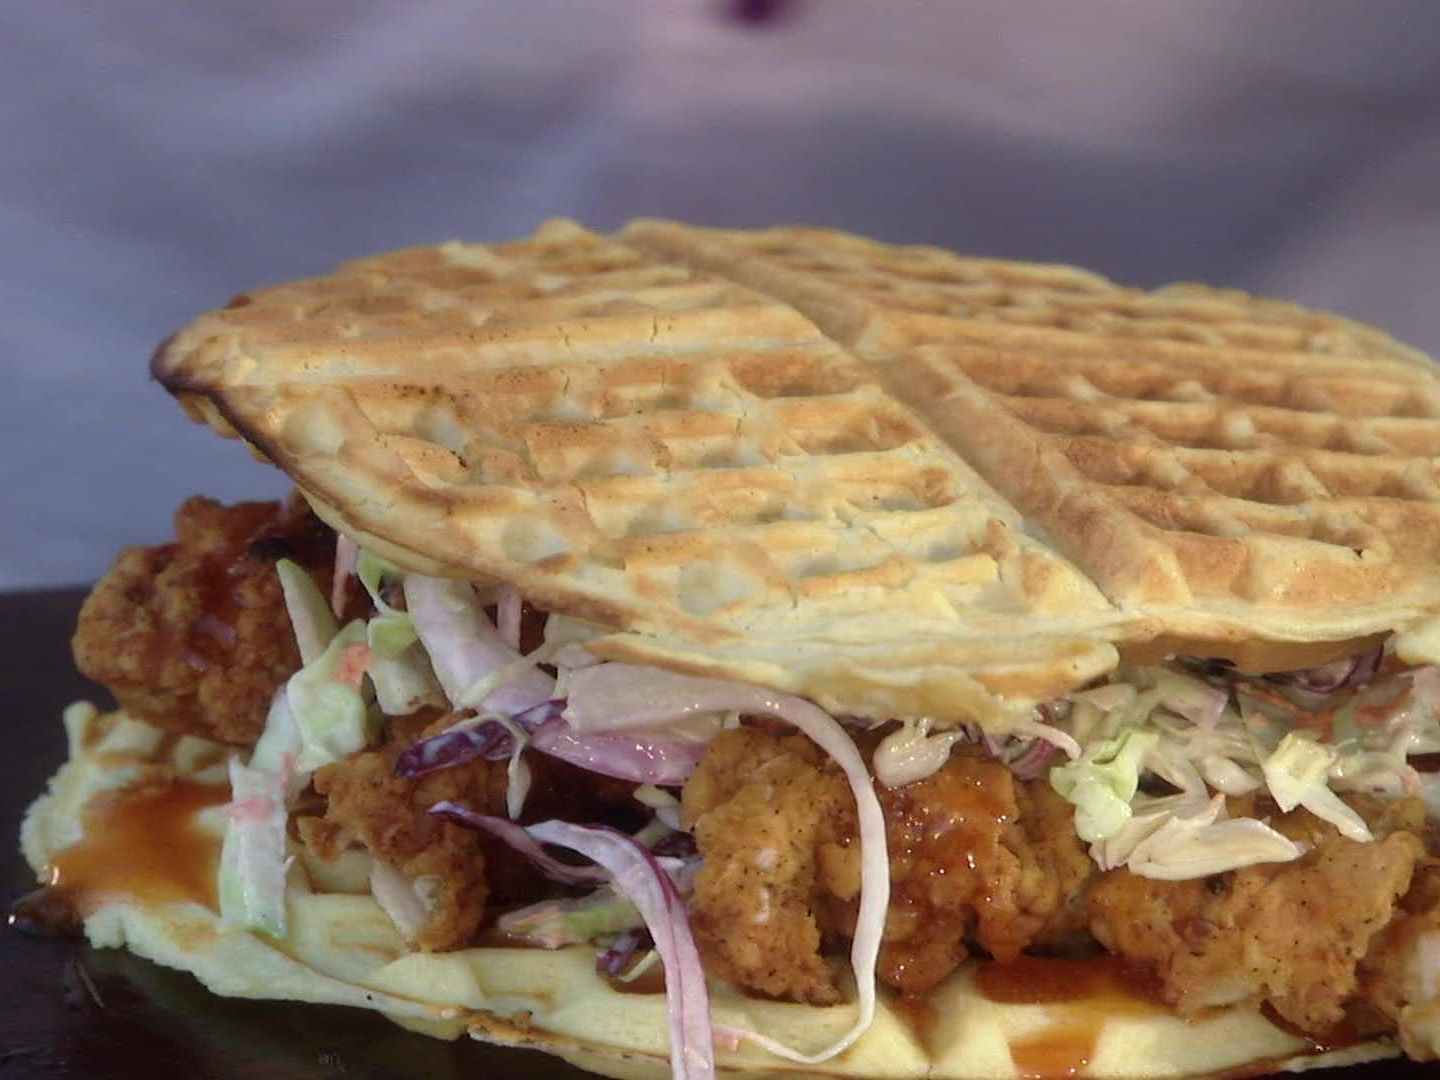 Fried Chicken And Waffle Sliders With Spicy Mayo Recipe Chicken And Waffles Food Network Recipes Waffle Sliders